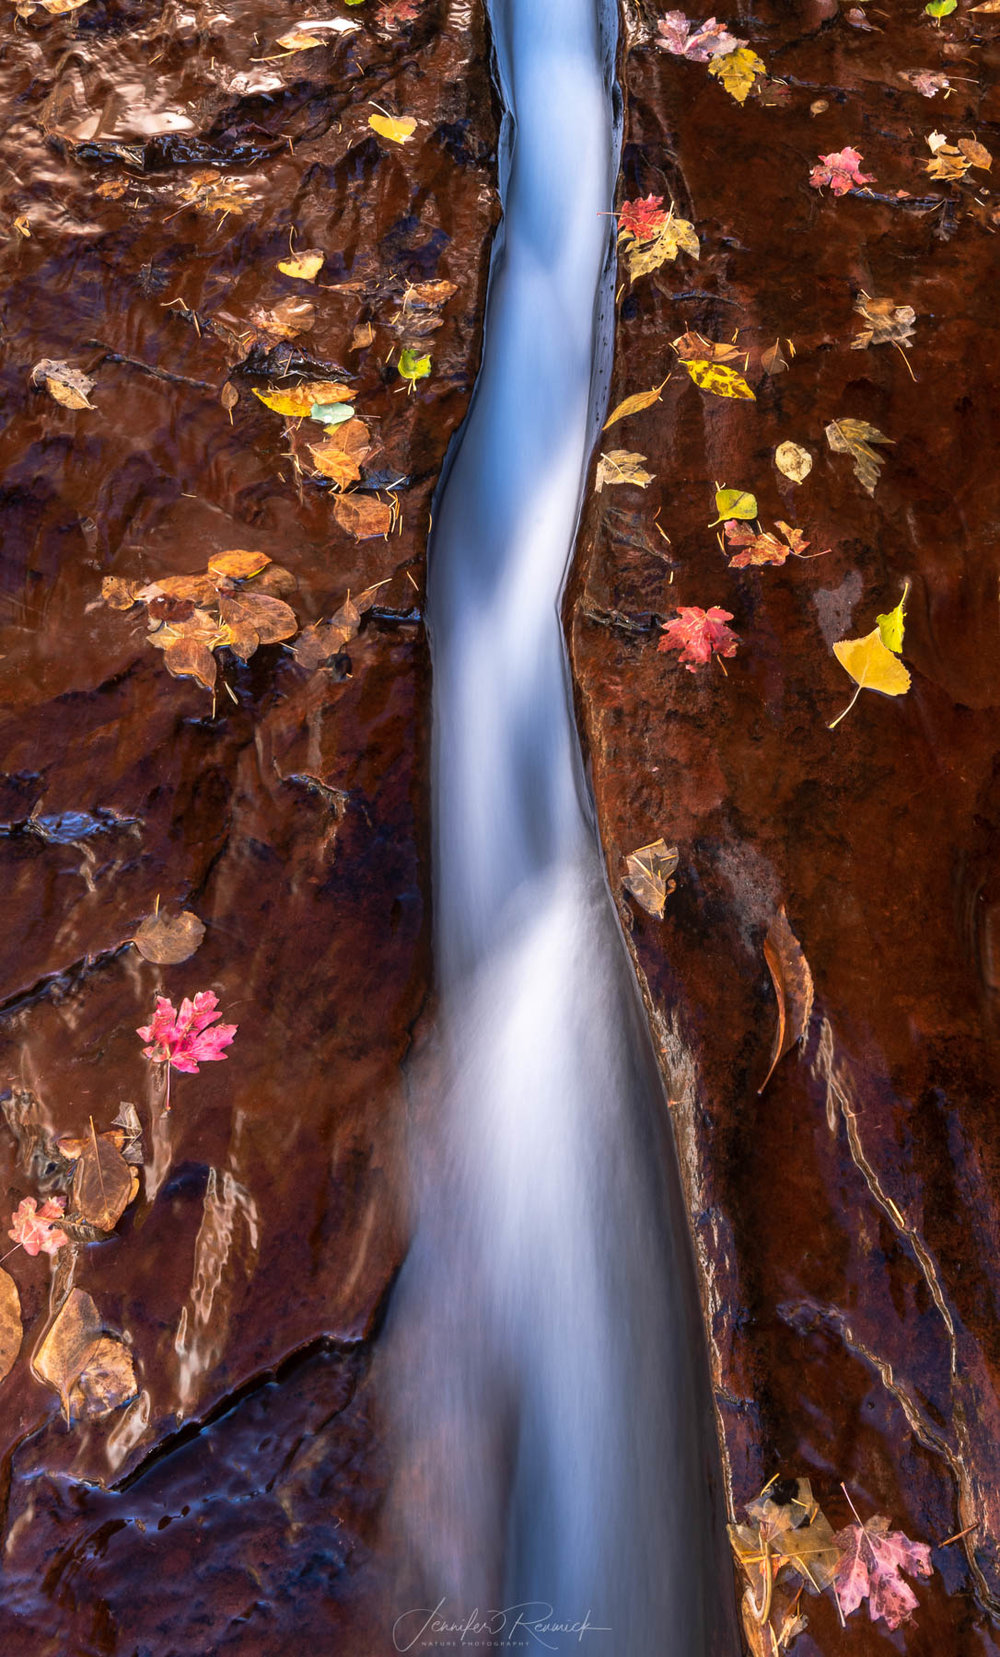 Autumn Fissure / Jennifer Renwick / Autumn leaves border a crack with rushing water